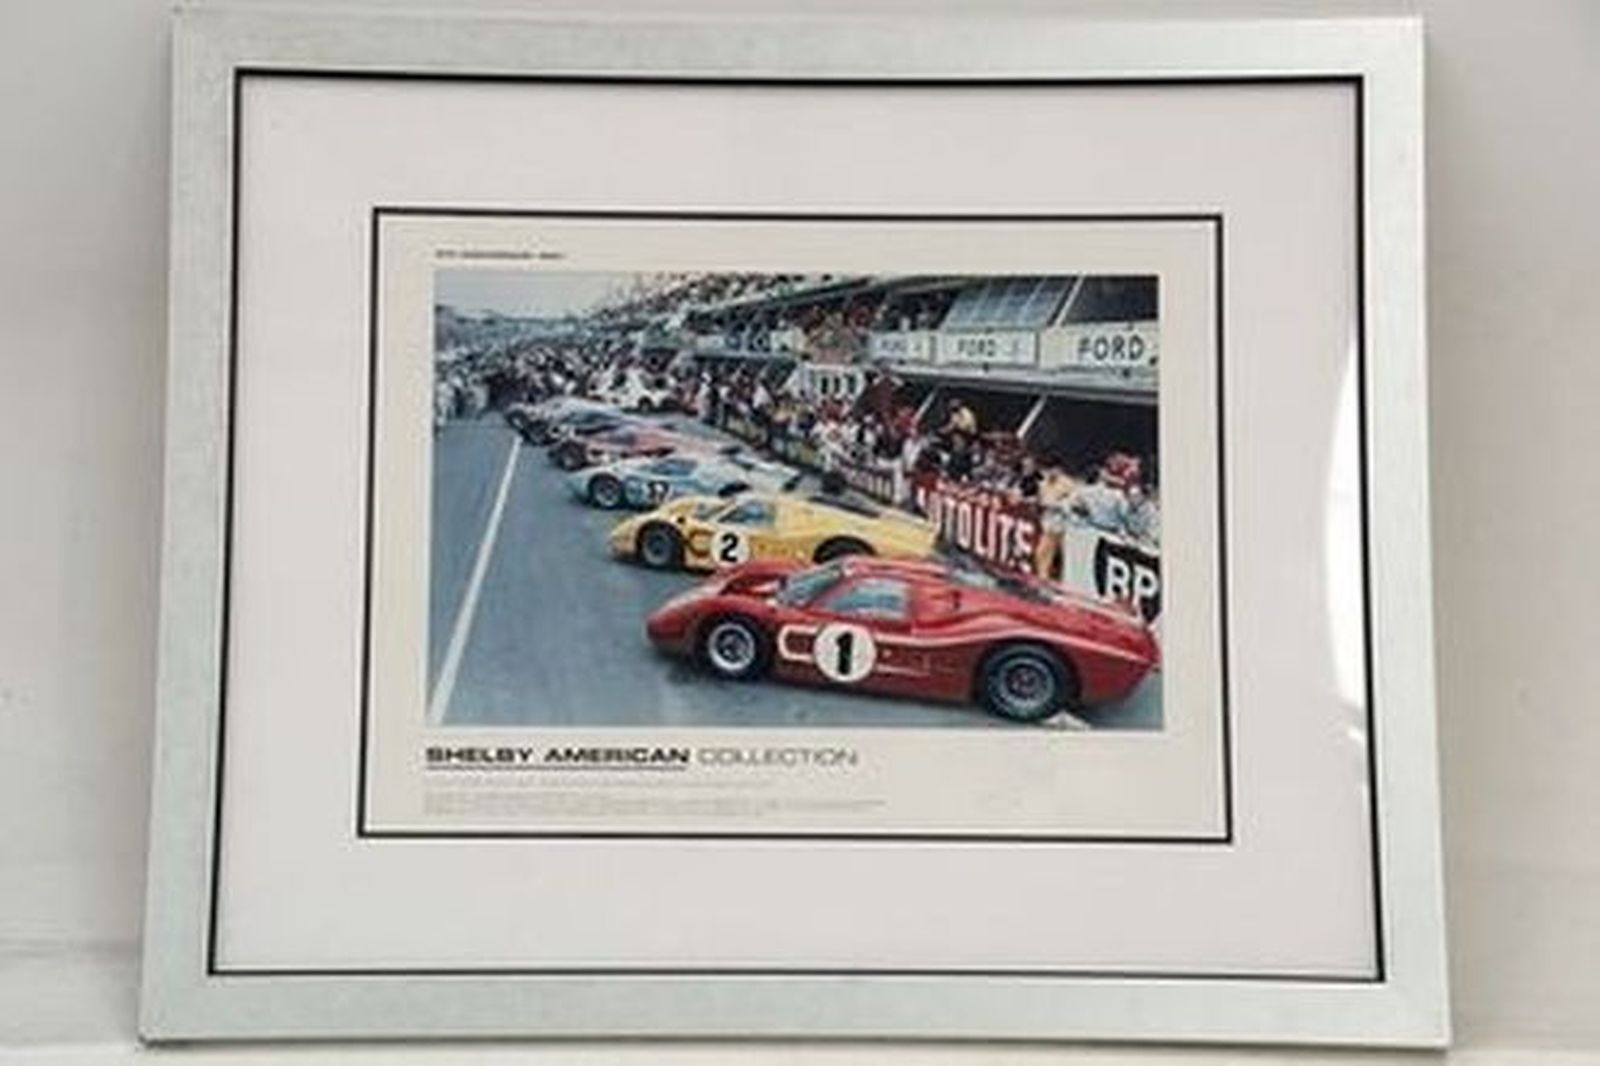 Framed Signed Print - Shelby American Collection signed by Caroll Shelby (90 x 90cm)